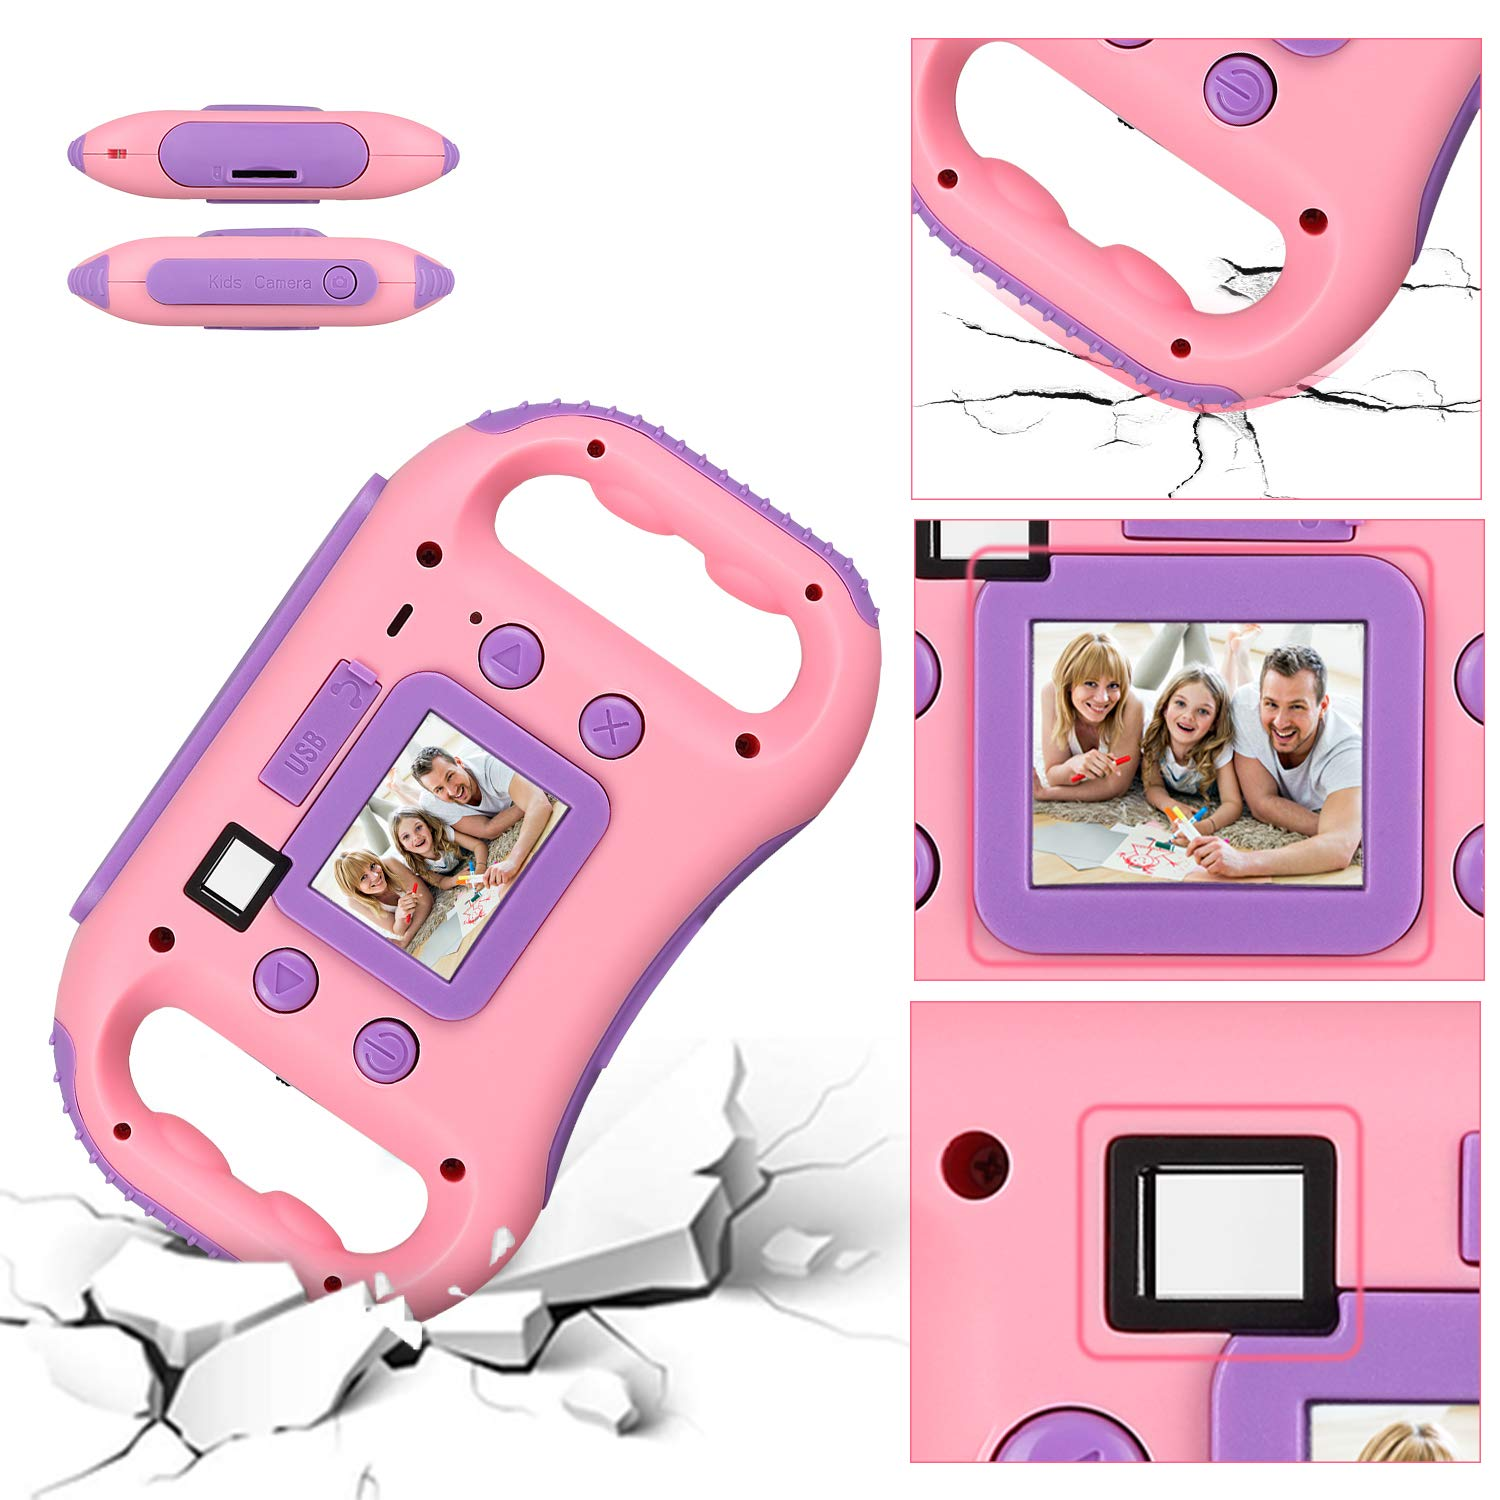 AGM Kids Camera for Girls & Boys, 1.77Inch Children Video Recorder Toddler Digital Camera,Creative Birthday Children's Day Gifts (Pink) by AGM (Image #2)